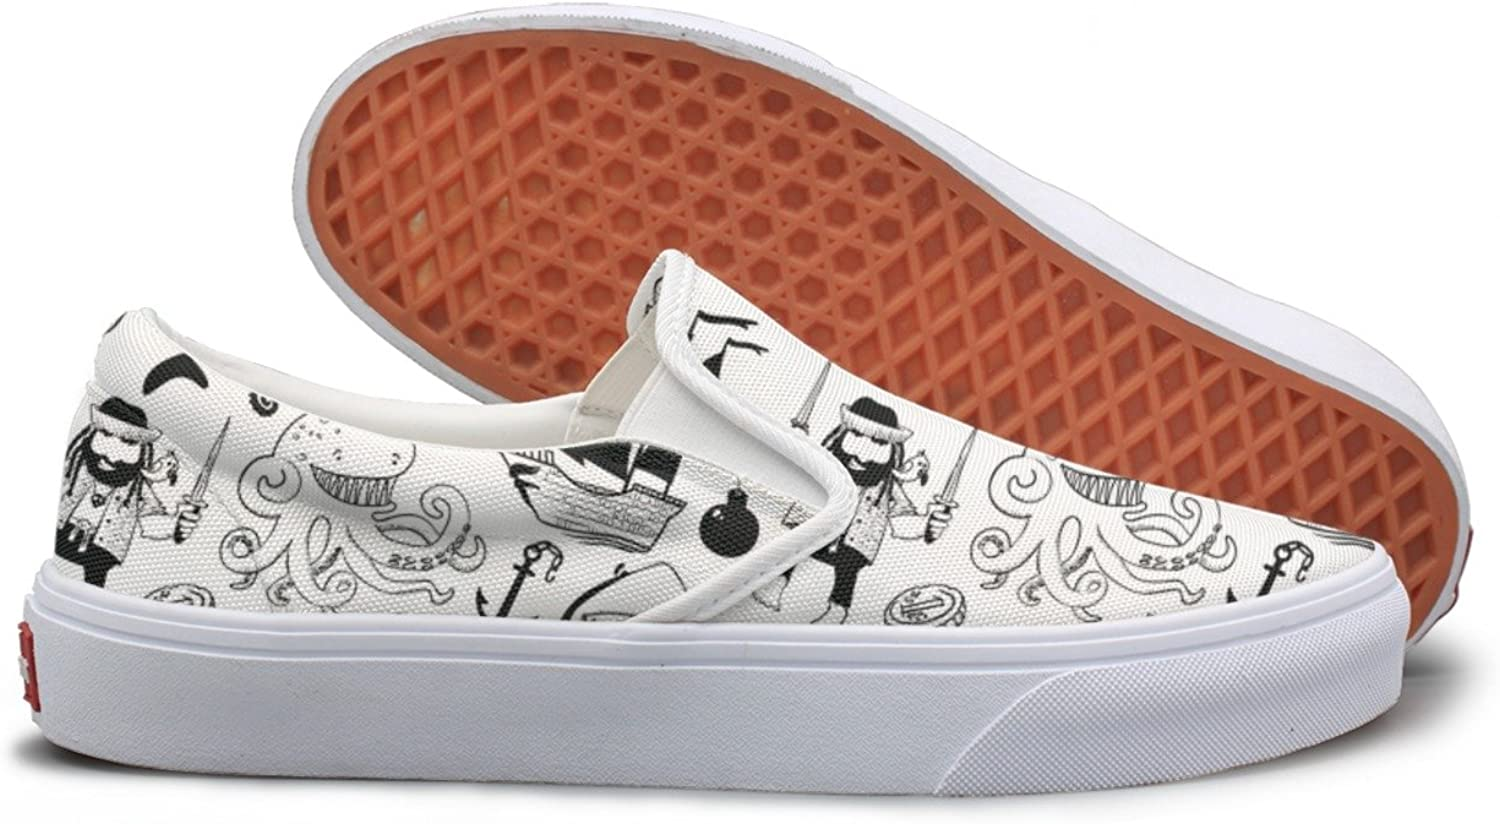 SEERTED Witpirates and Sharks Nautical White Canvas Slip On shoes for Women